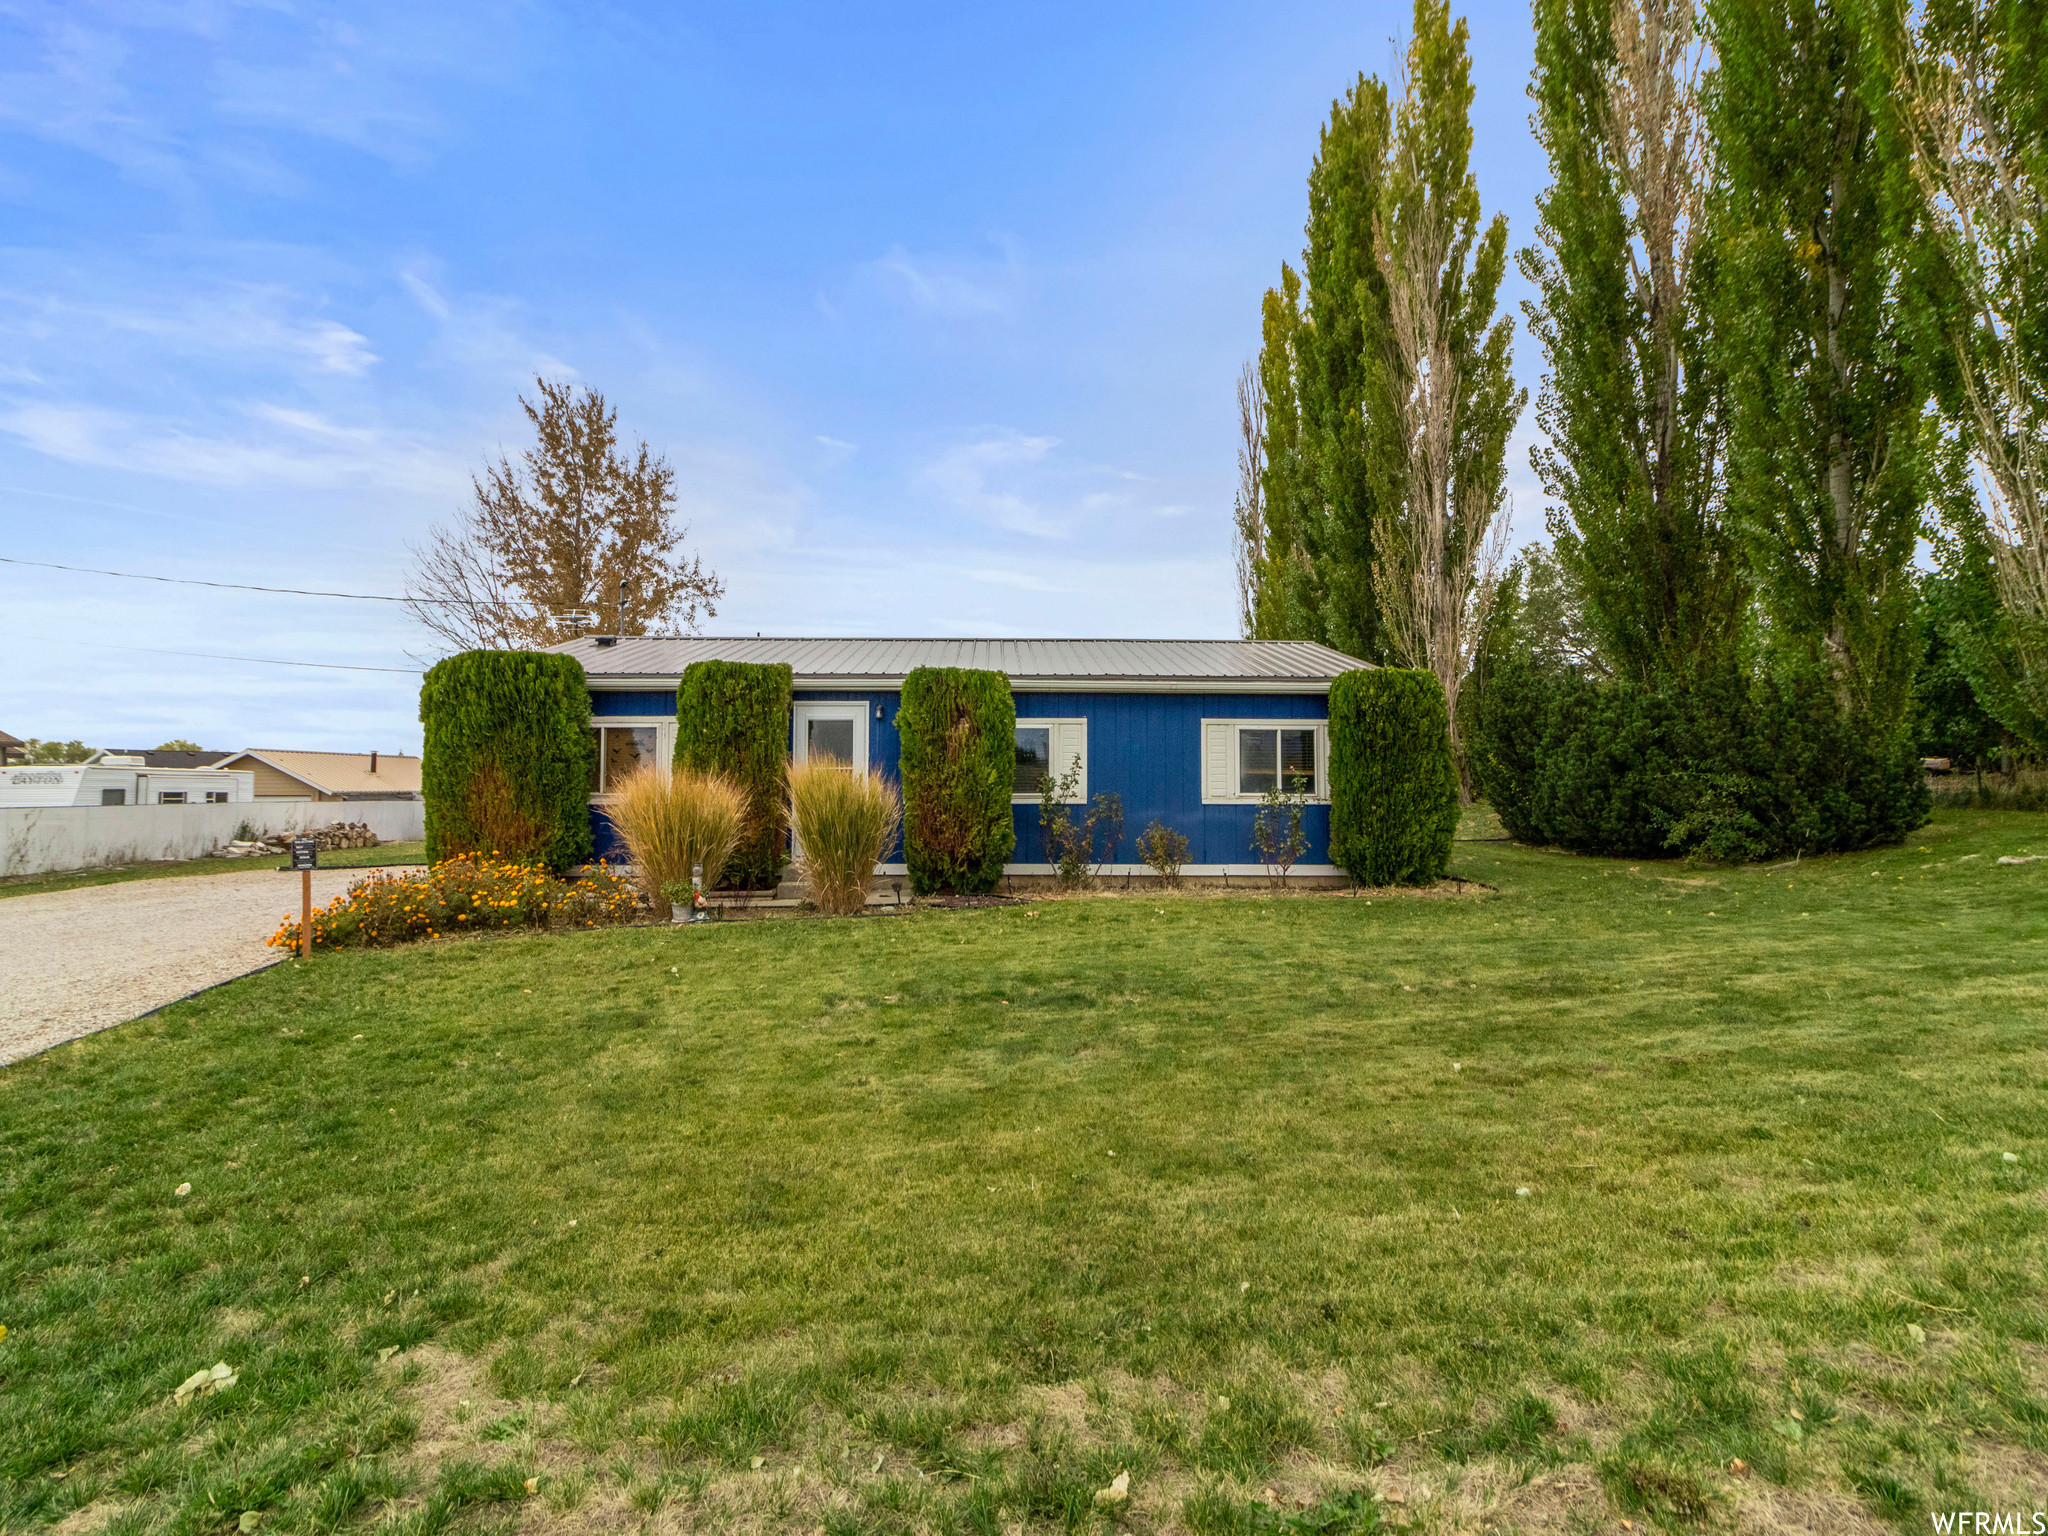 3-Bedroom House In Perry